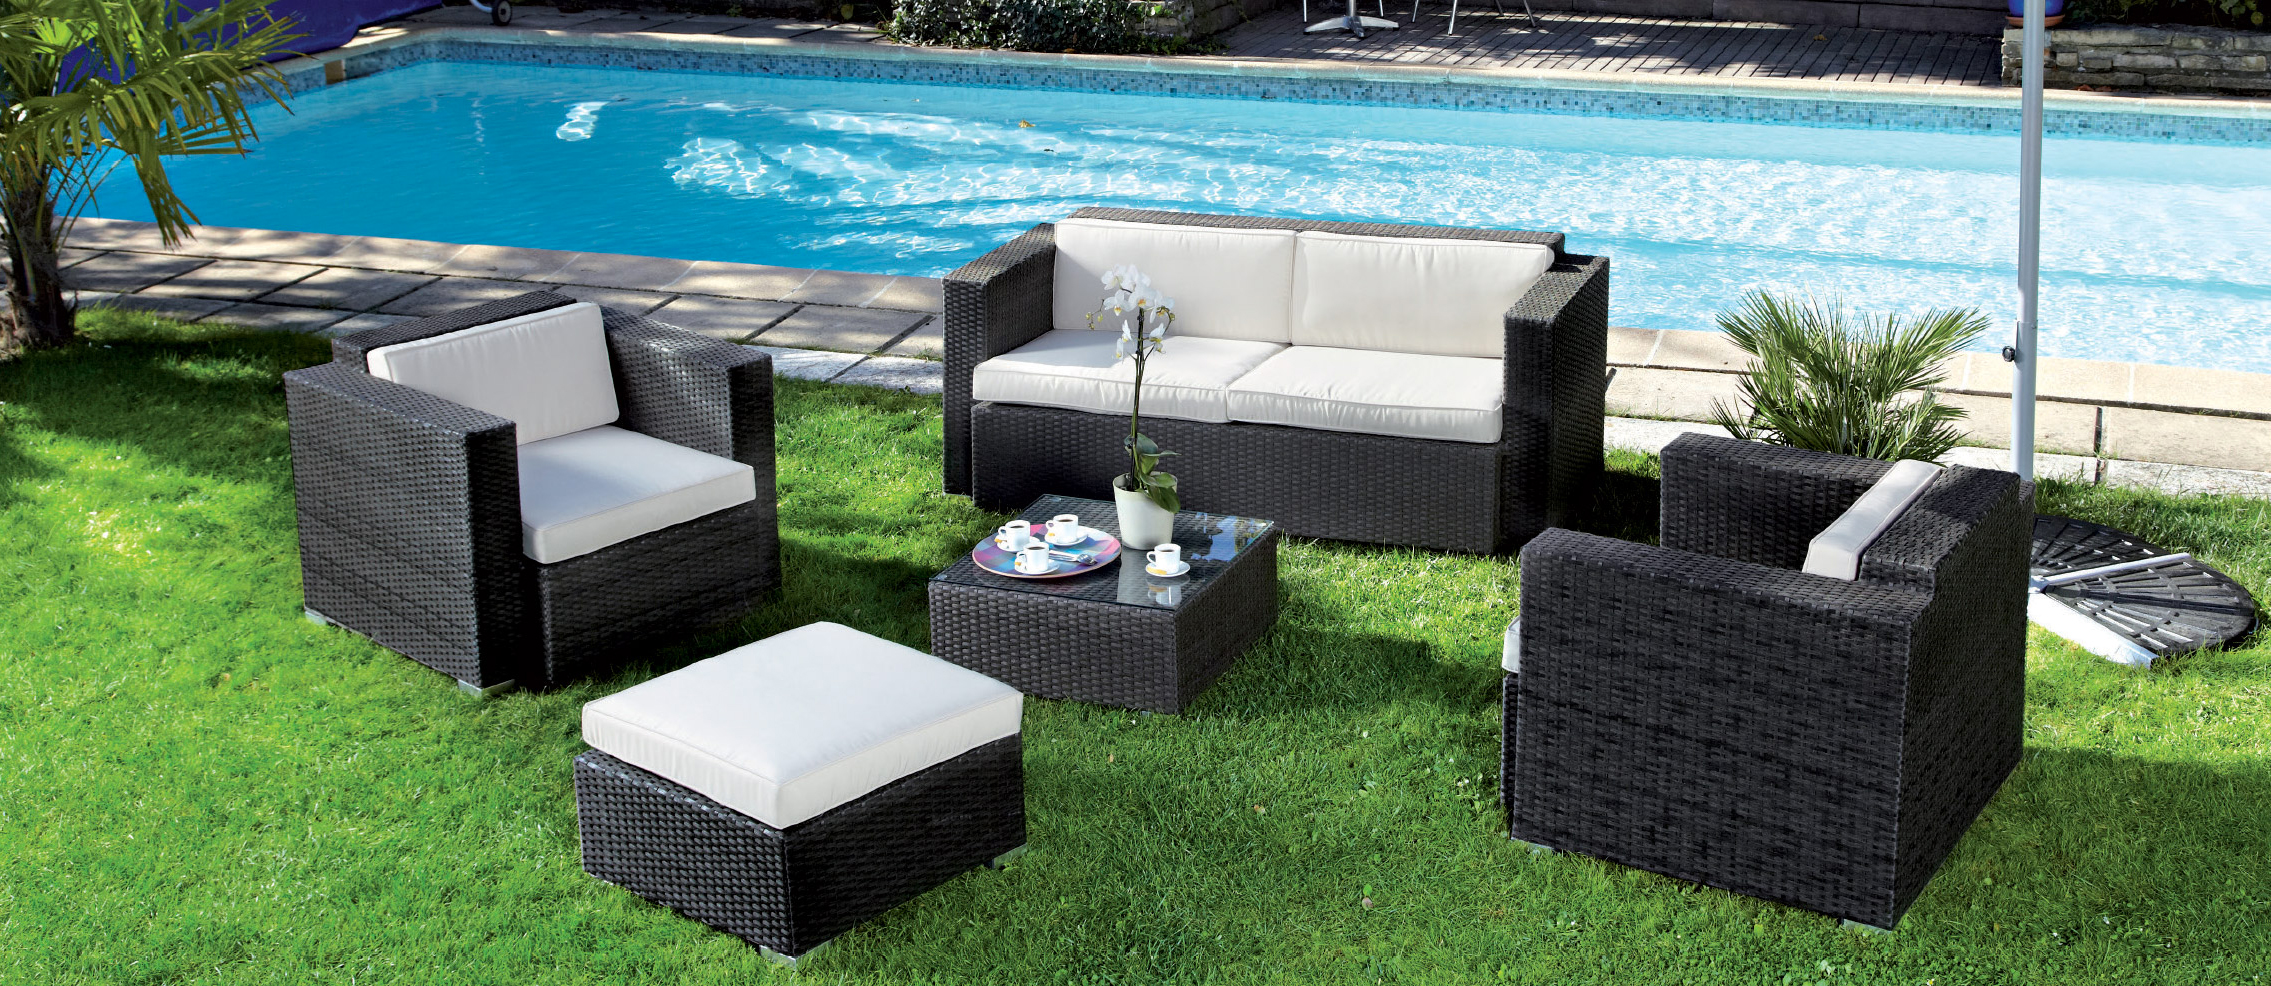 mobilier de jardin la tendance pour l 39 t lamarelle net. Black Bedroom Furniture Sets. Home Design Ideas